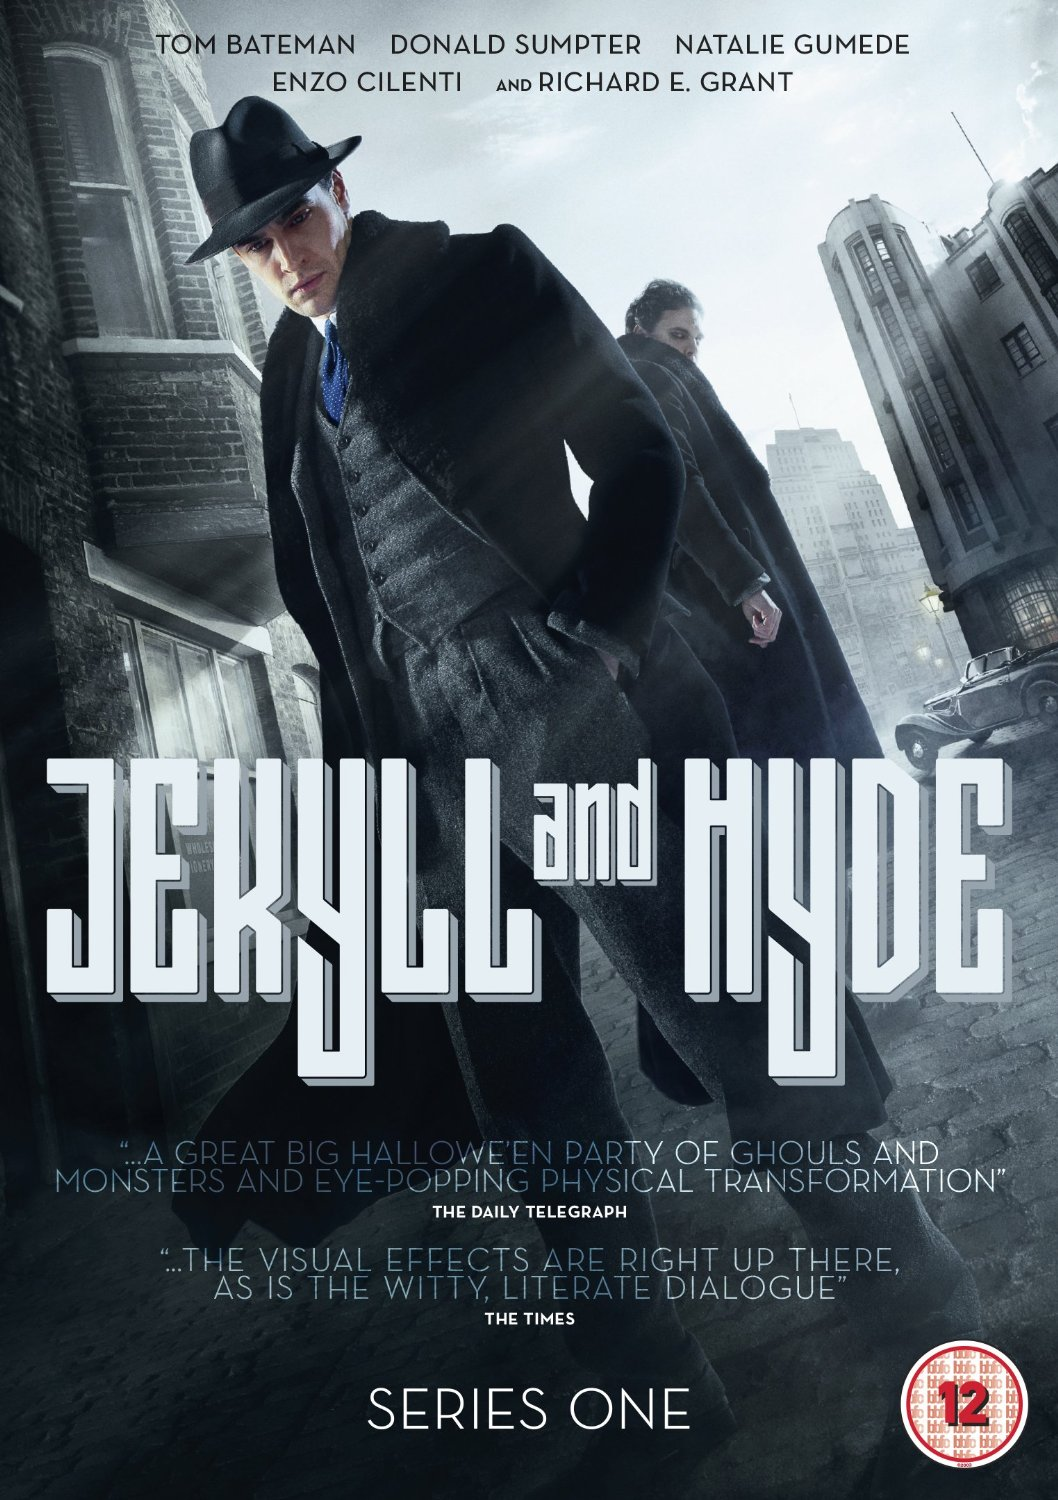 Jekyll And Hyde Series 1 DVD Review